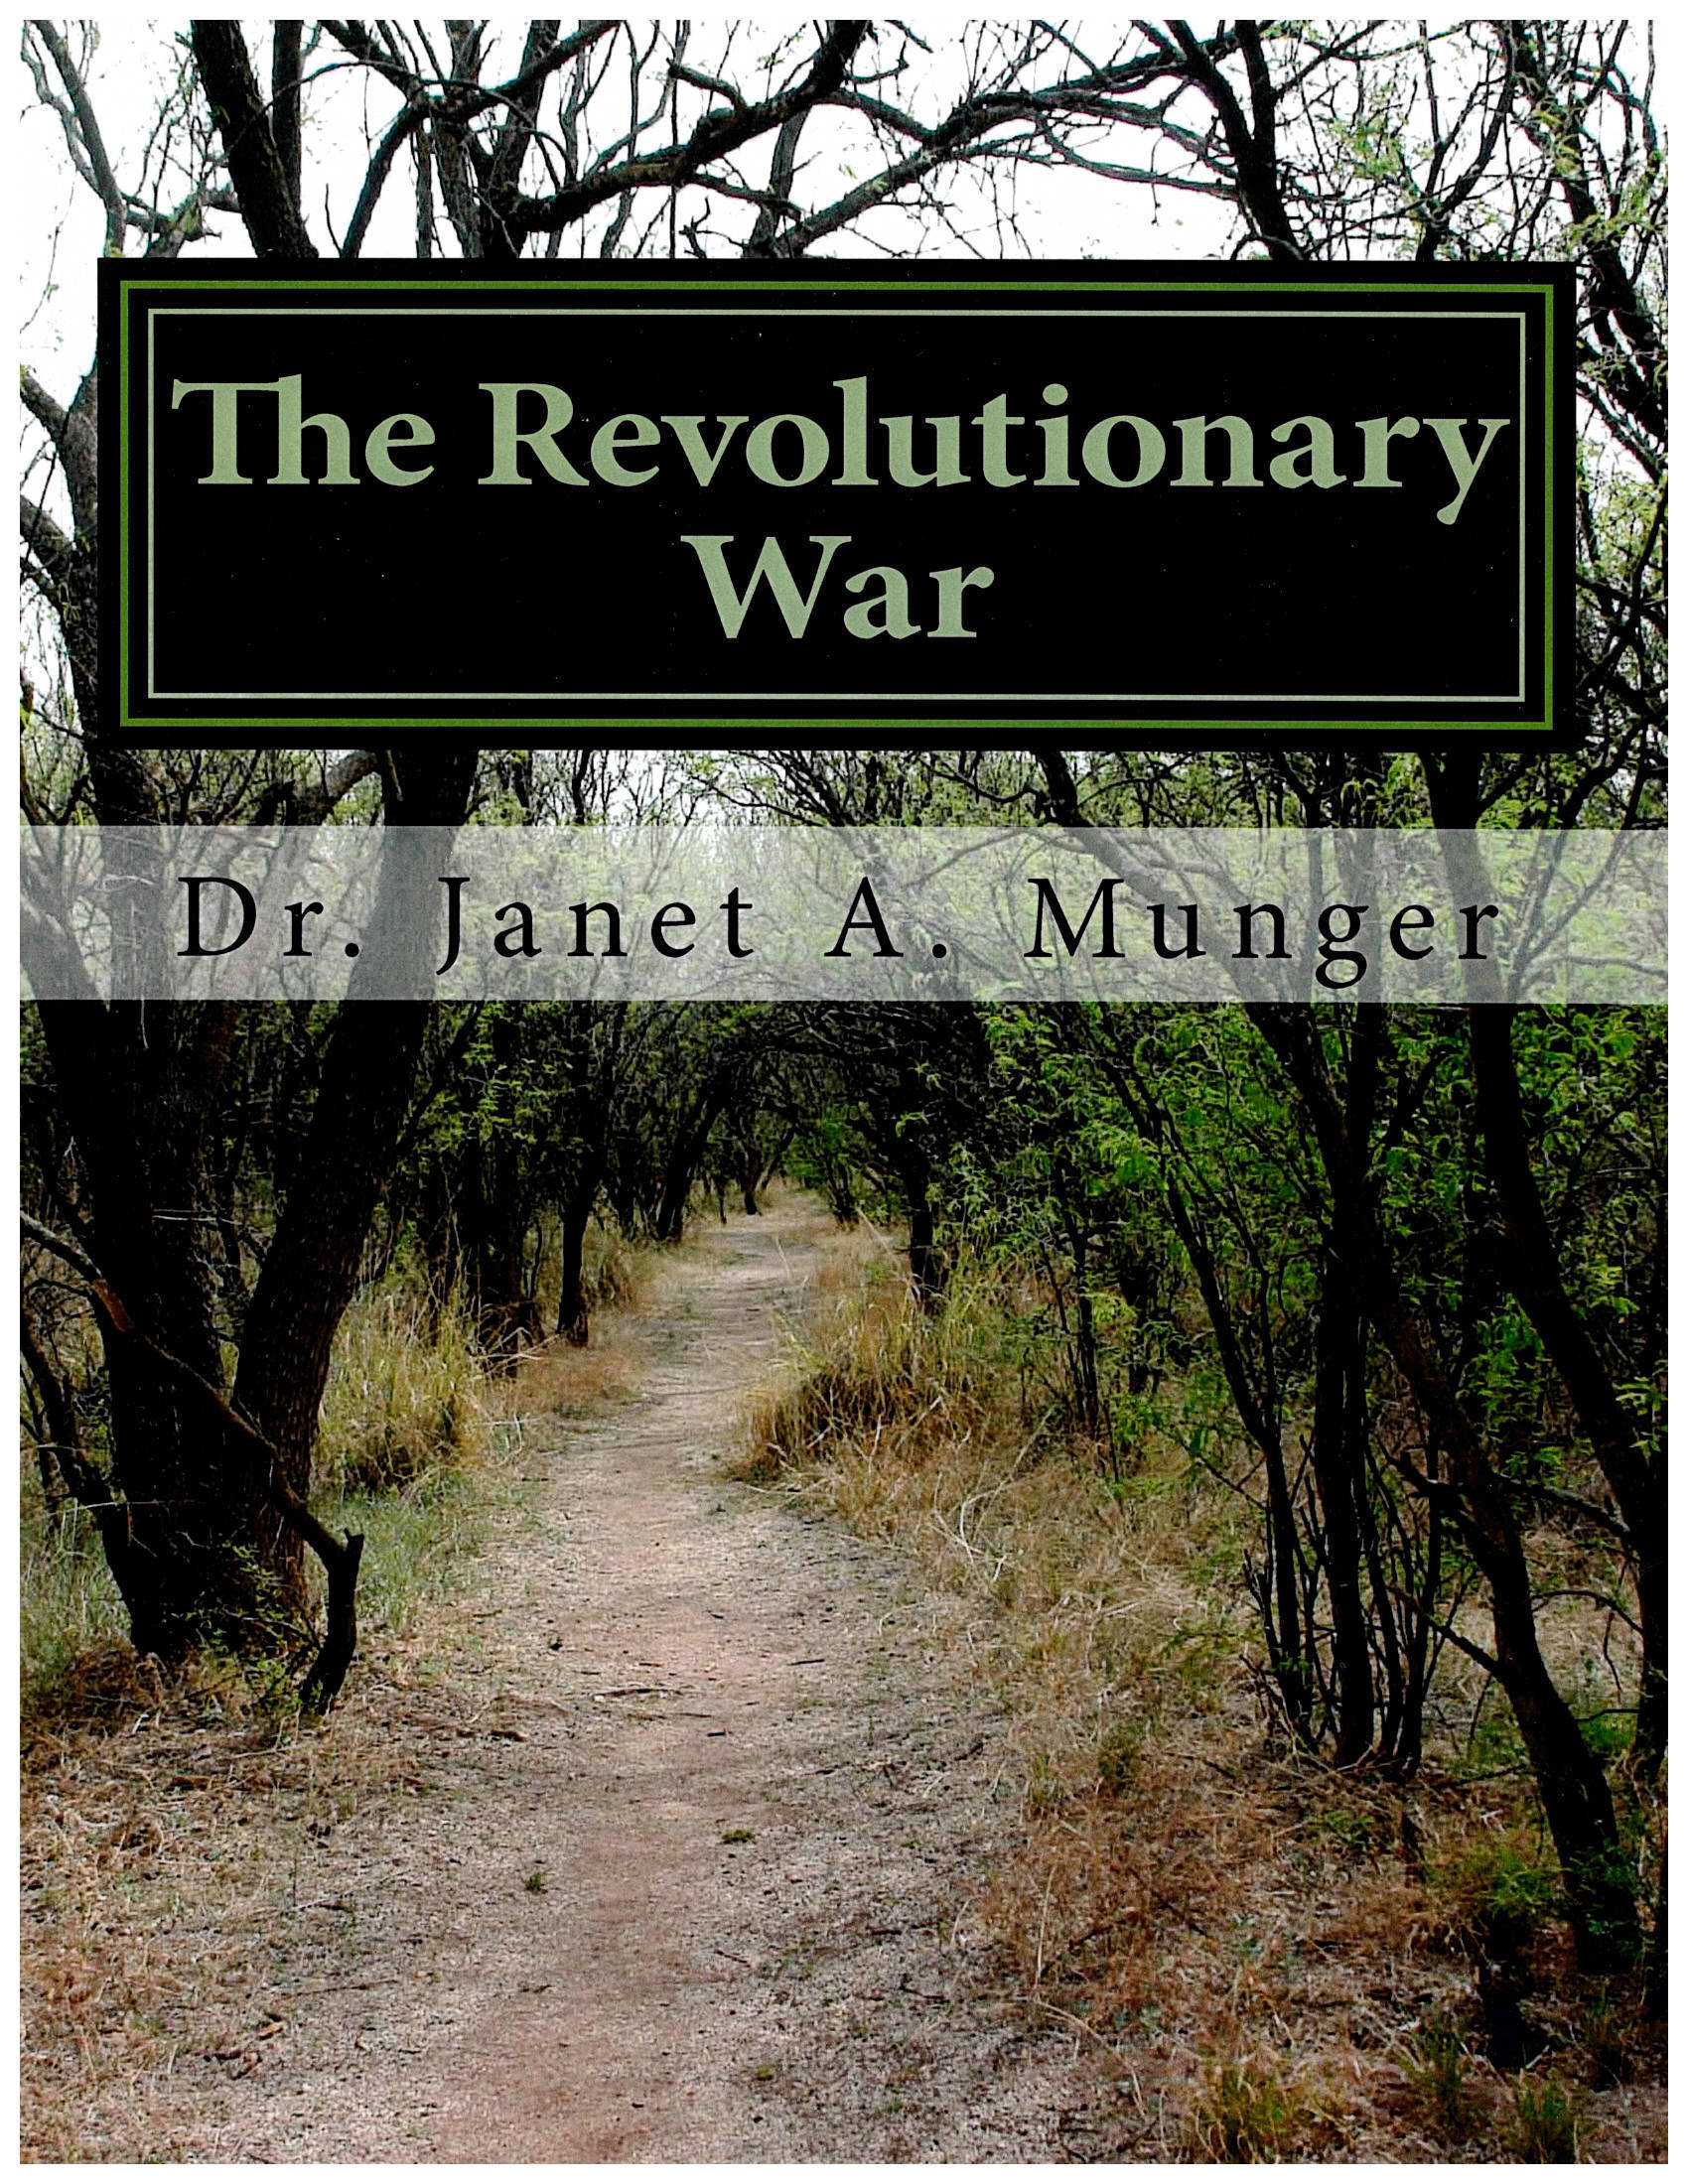 ab66e4af6347bf78612e_Facebook_JPG_The_Revolutionary_War_Cover_01-17-17.jpg